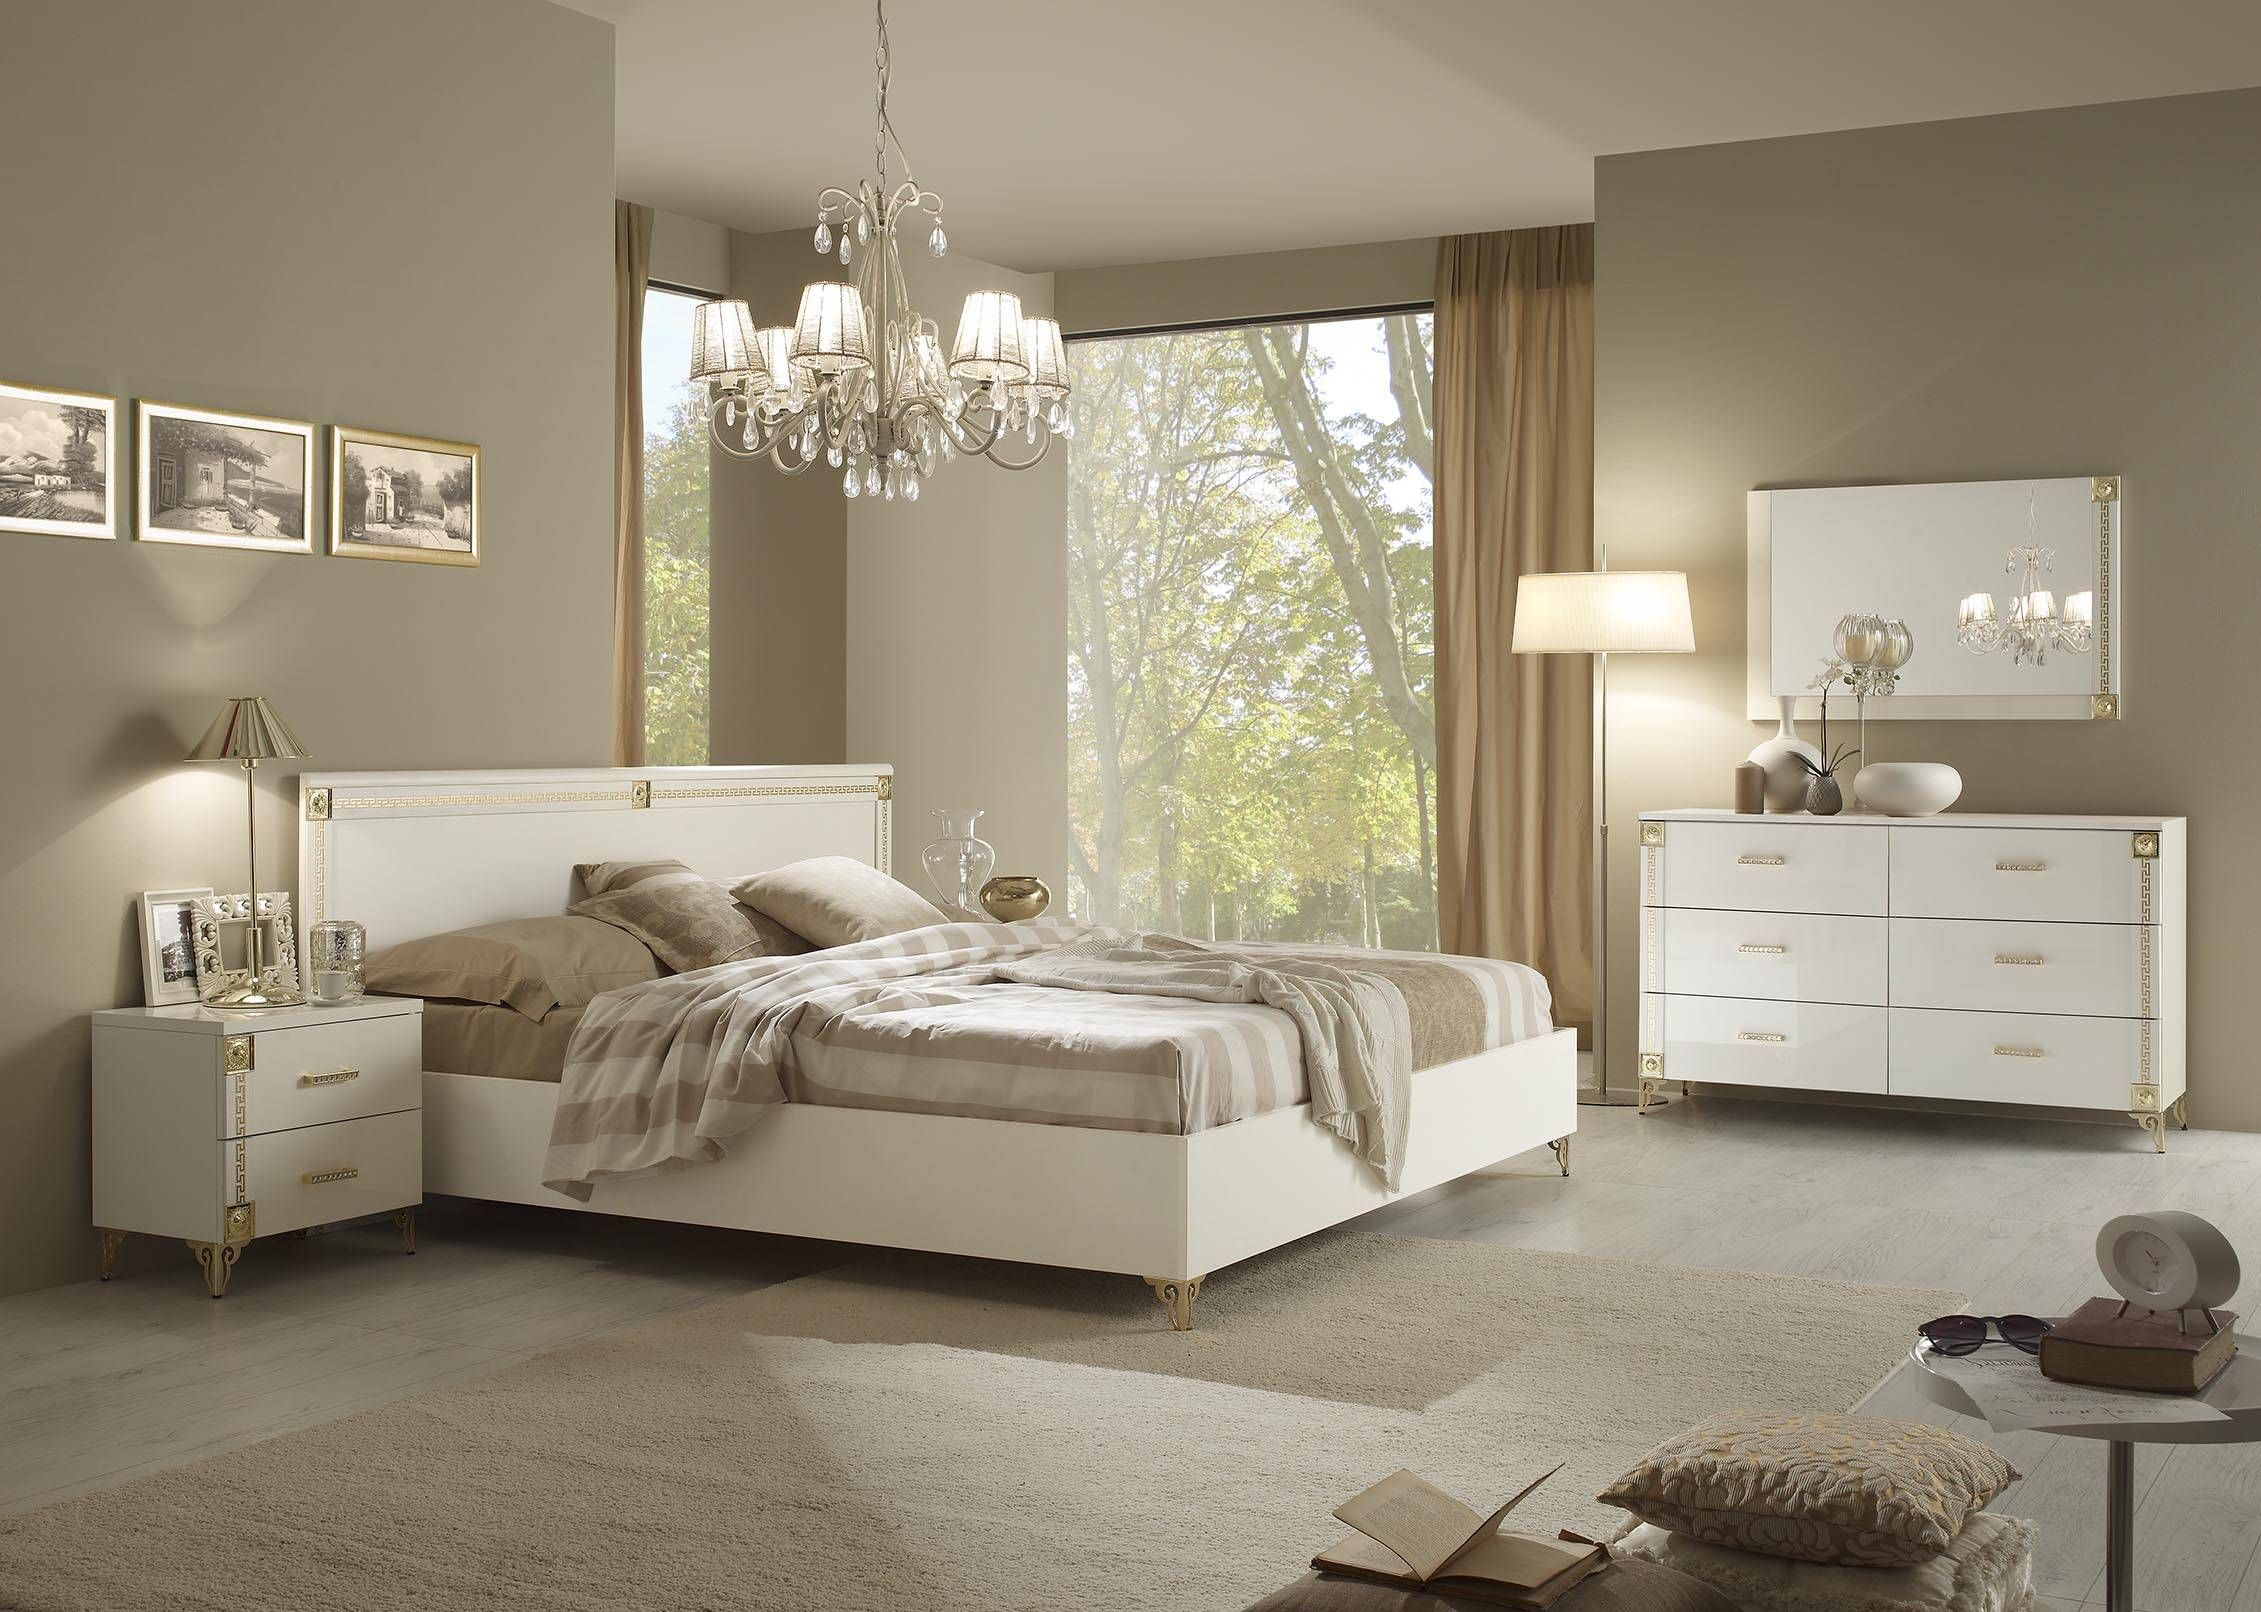 Upscale Classy White Bedroom Suite With Stylish Gold Accents Add